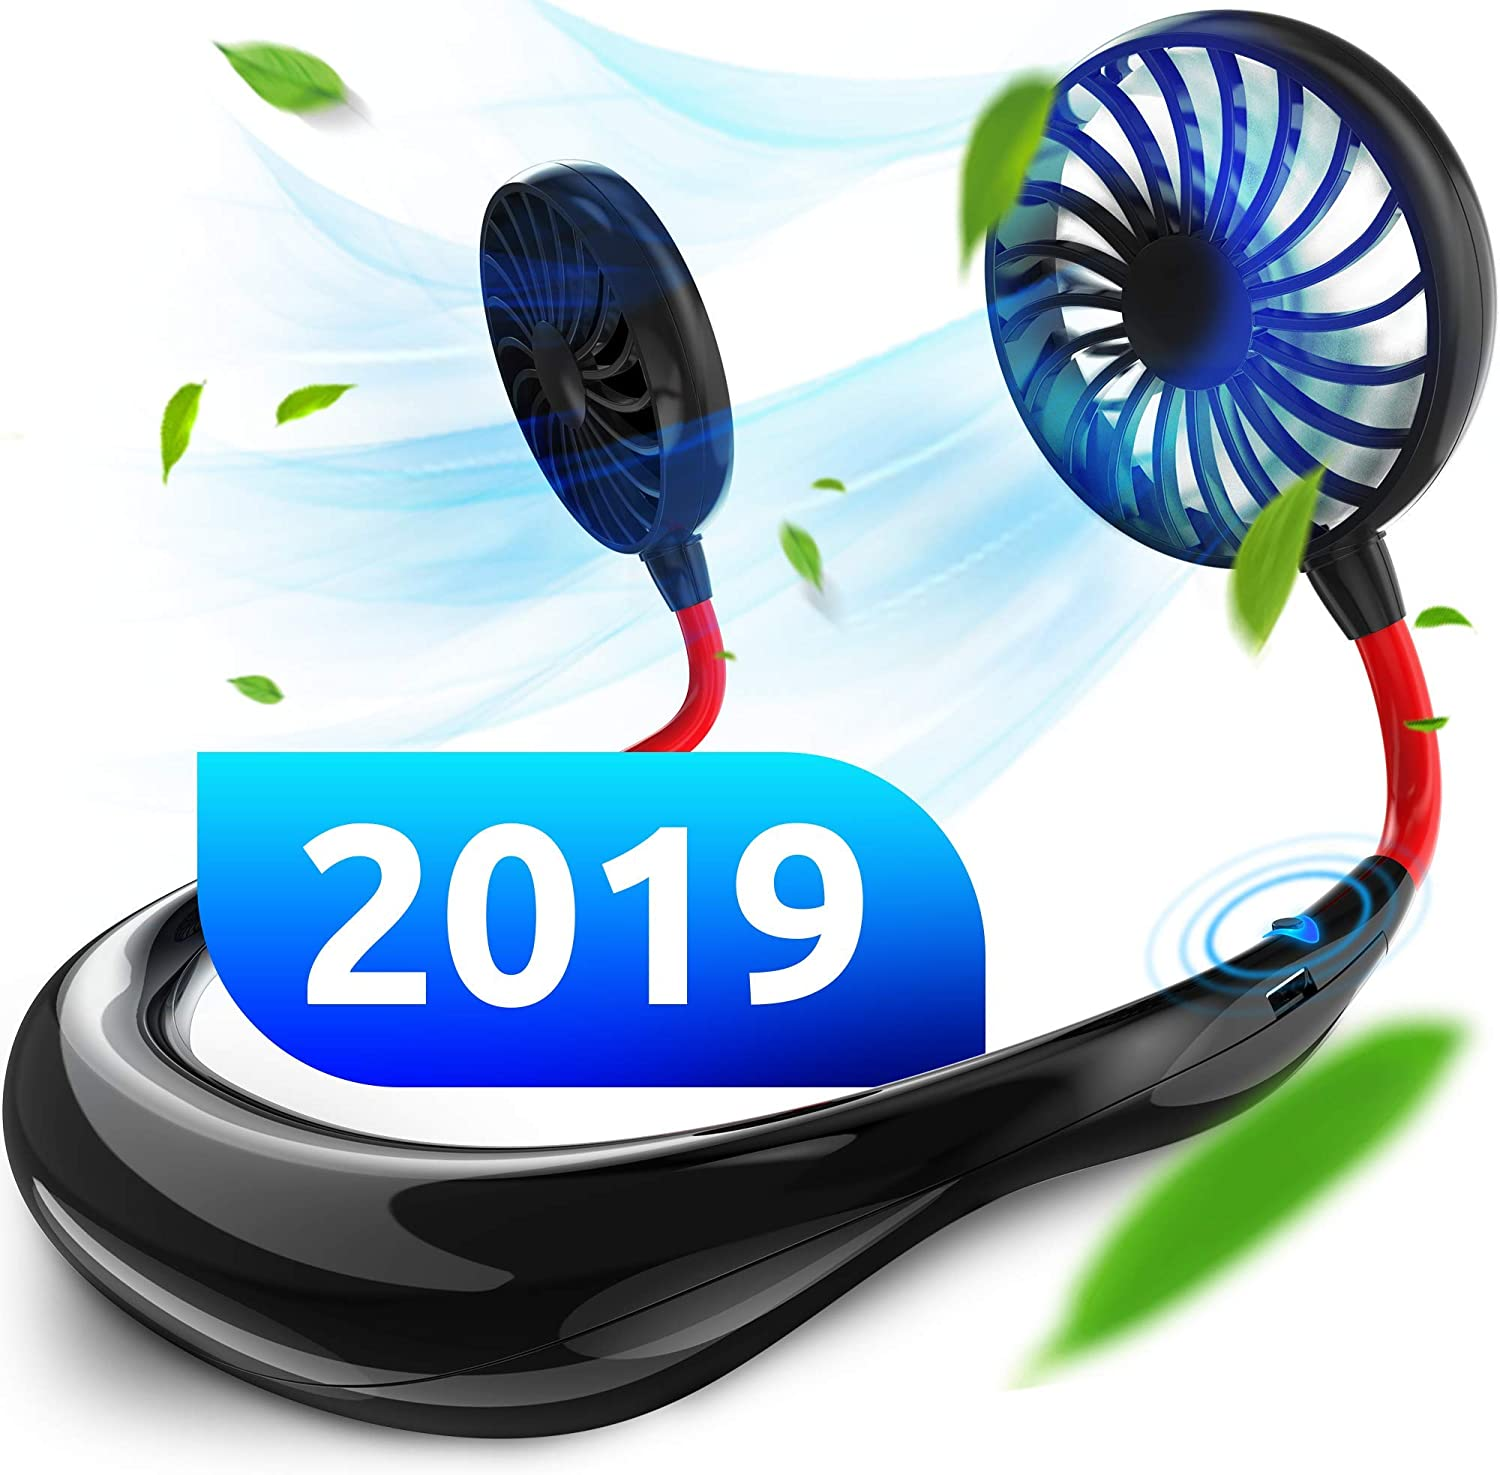 Portable Hand Free Fan USB Rechargeable 2000mAh Battery Sports Neck Fan Neckband 360 Degree Adjustable Necklace Personal Mini Fan 3 Speeds 12 Hours Working for Office Travel Outdoor(Black)